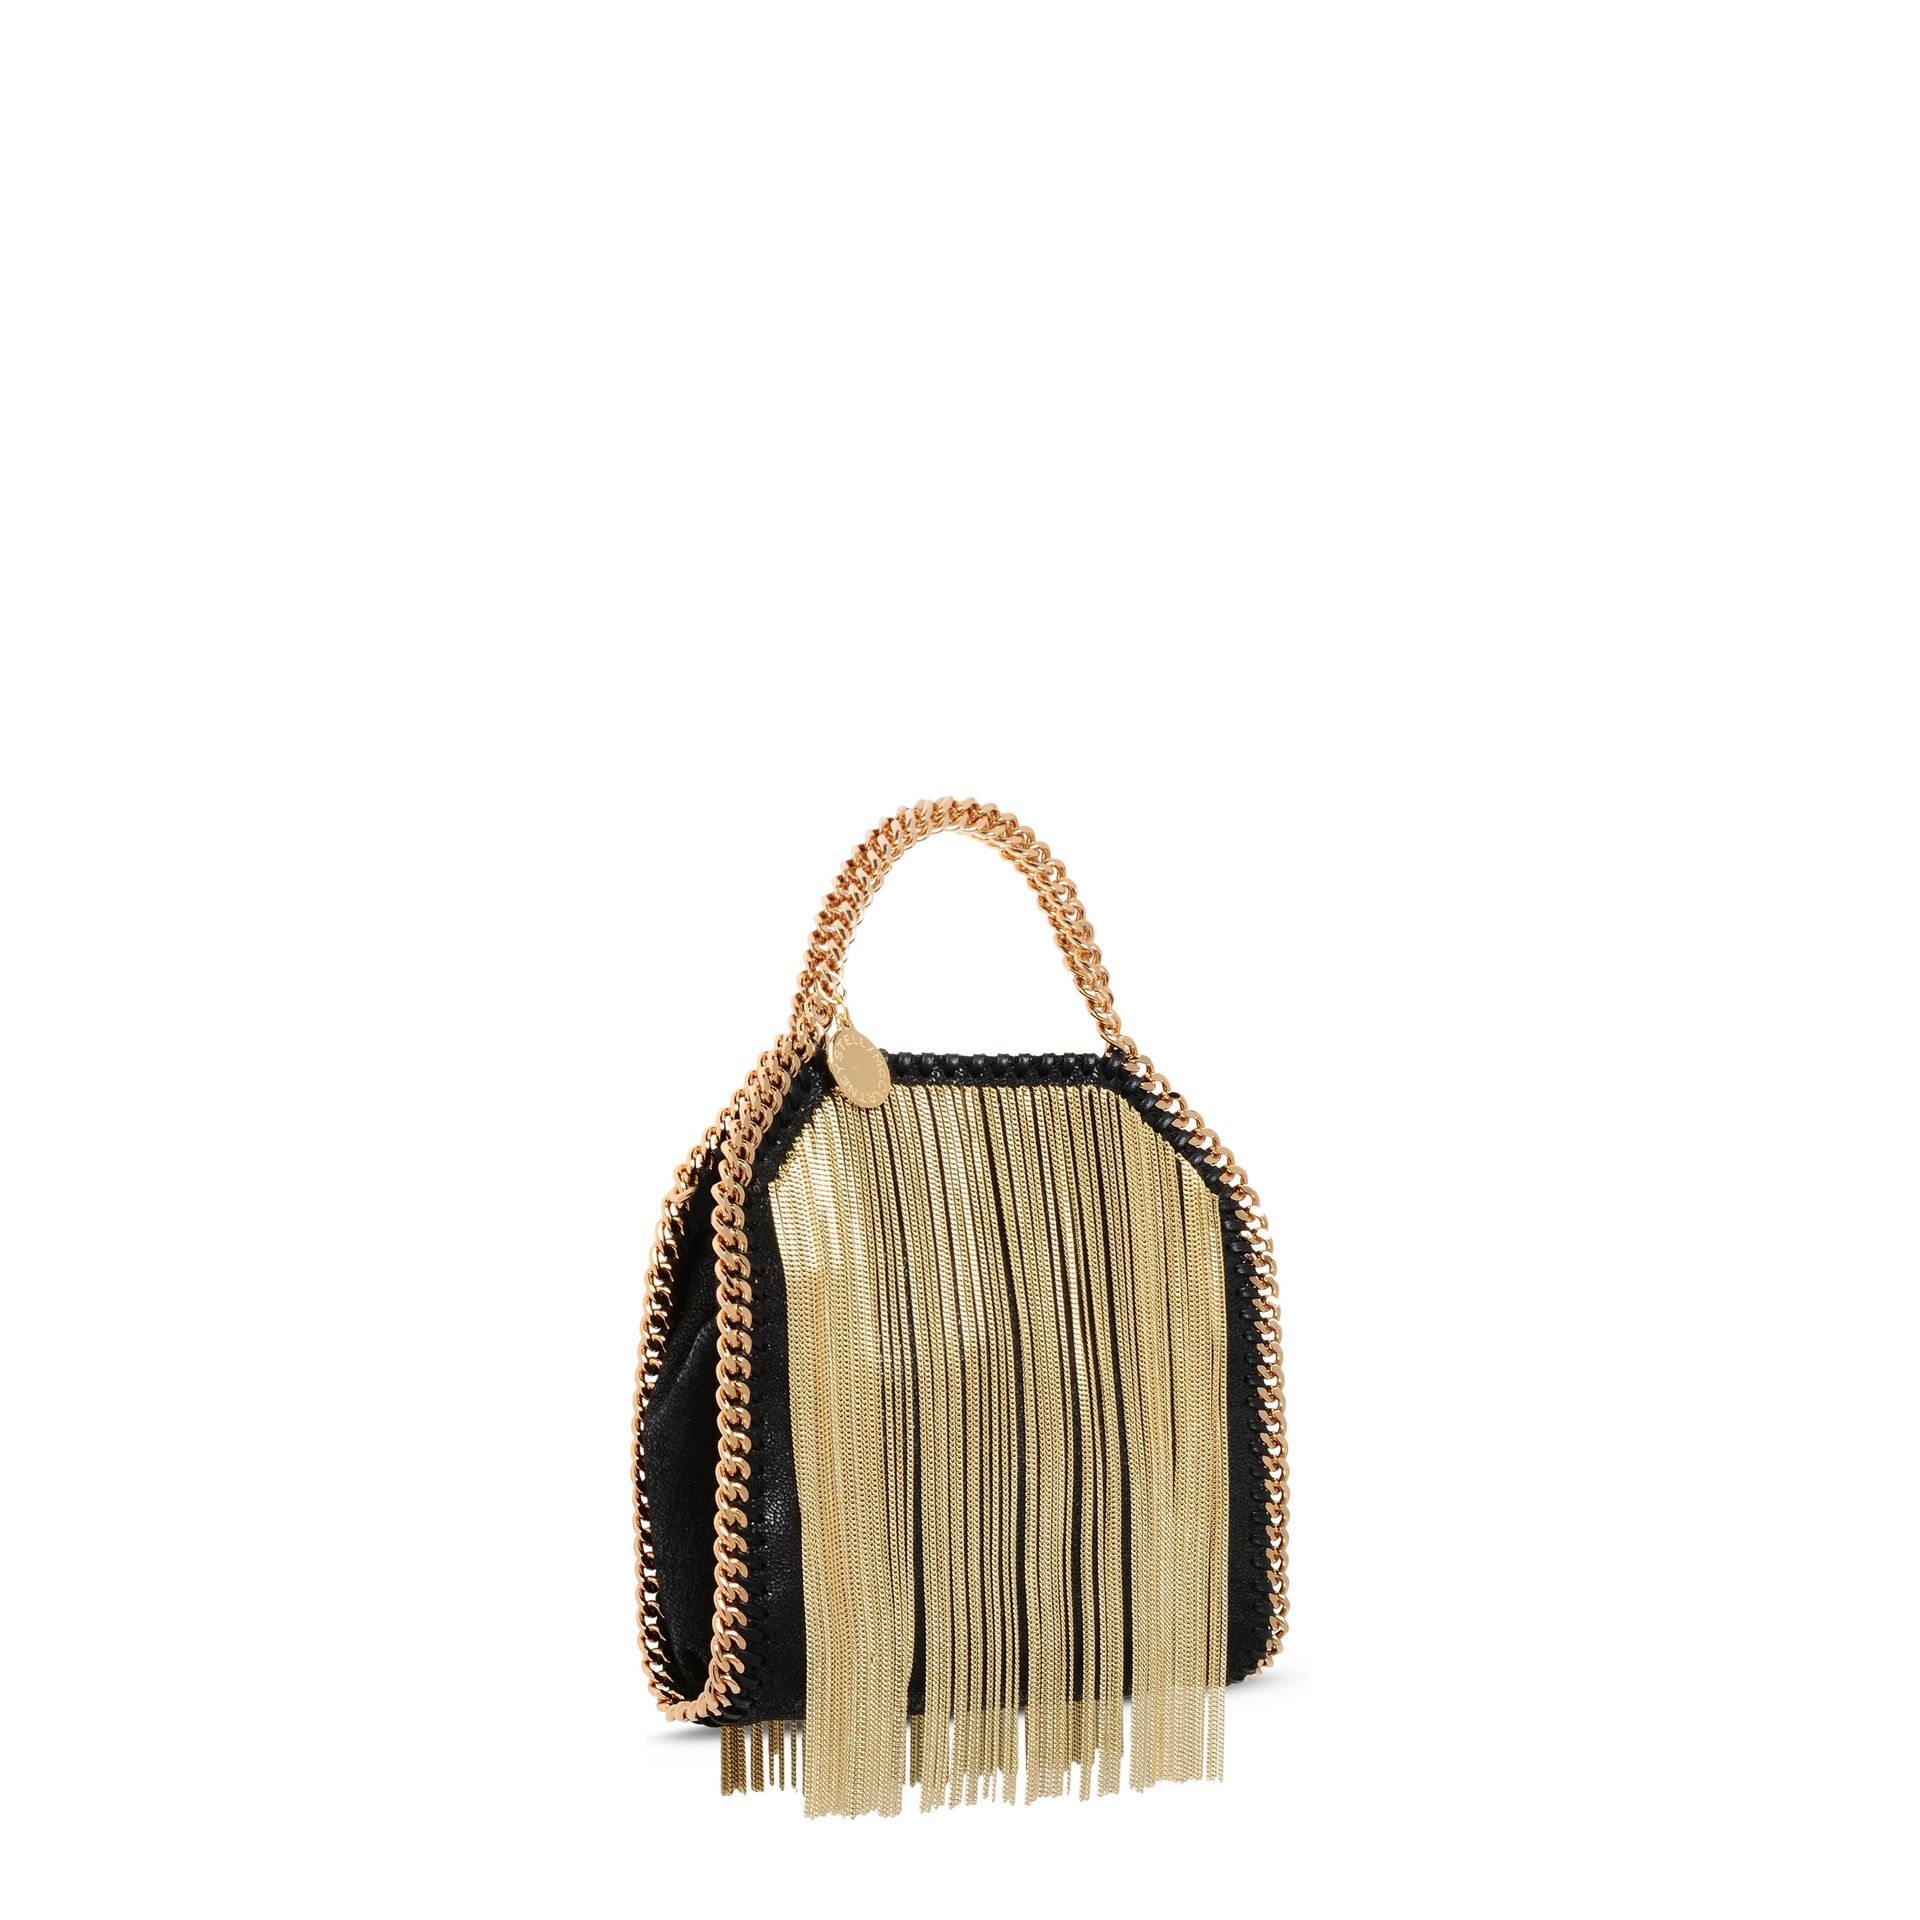 Lyst - Stella McCartney Falabella Chain Fringed Tiny Tote in Metallic 610069251a